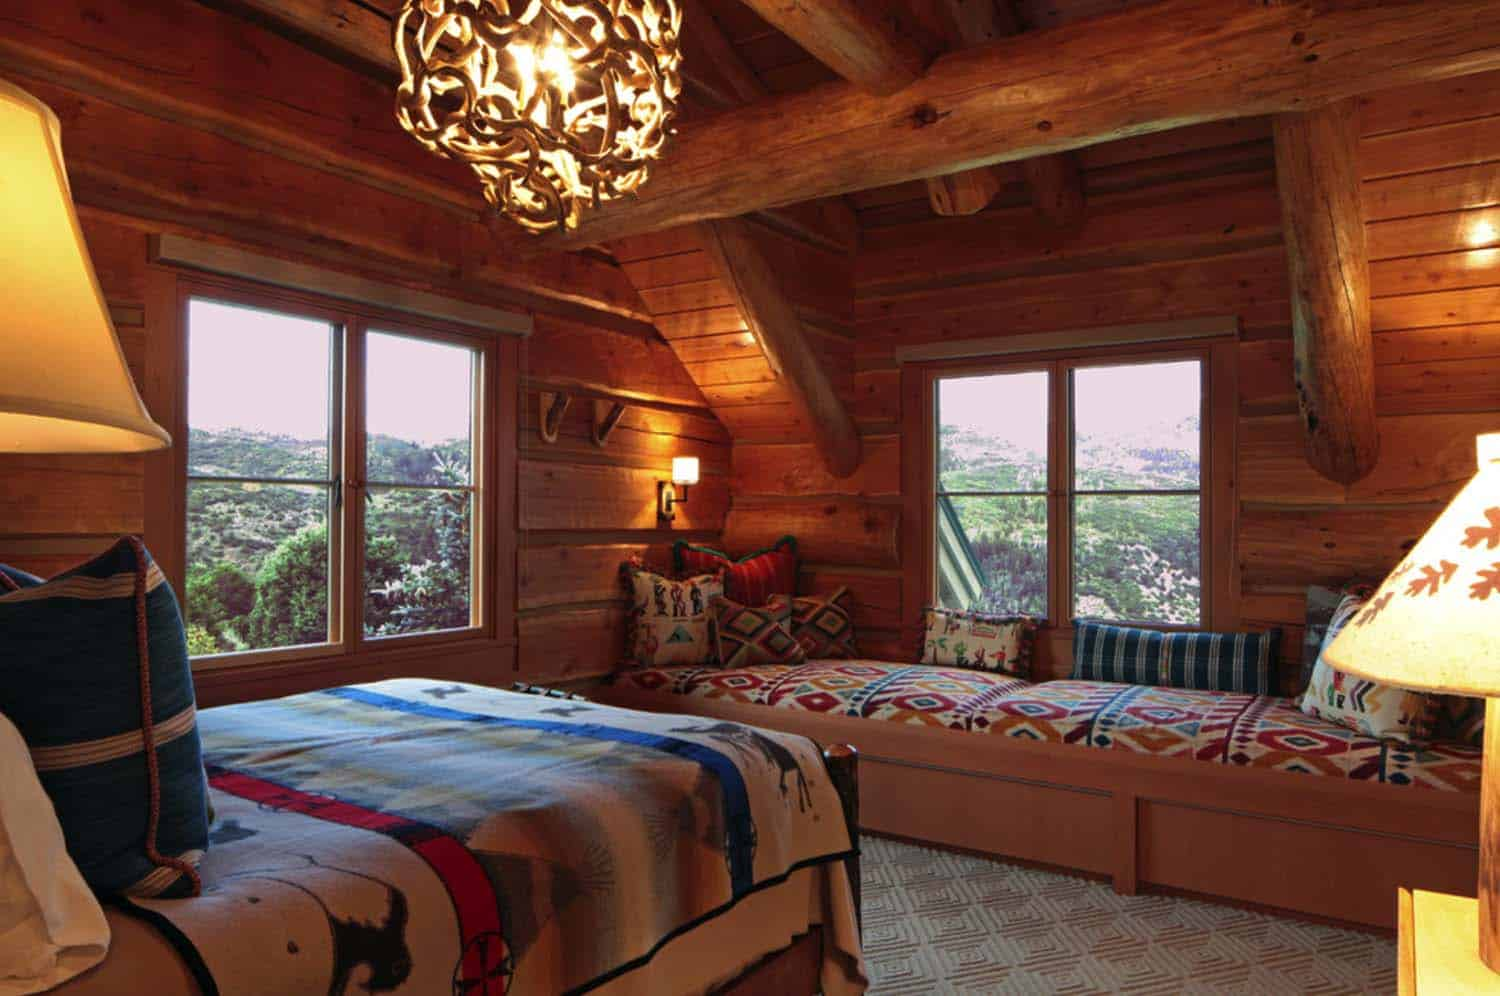 wind bedroom room living tufted bedding best ottoman bedrooms decorating wood design cabin cottage and chic on trimmed with cabins ideas rustic